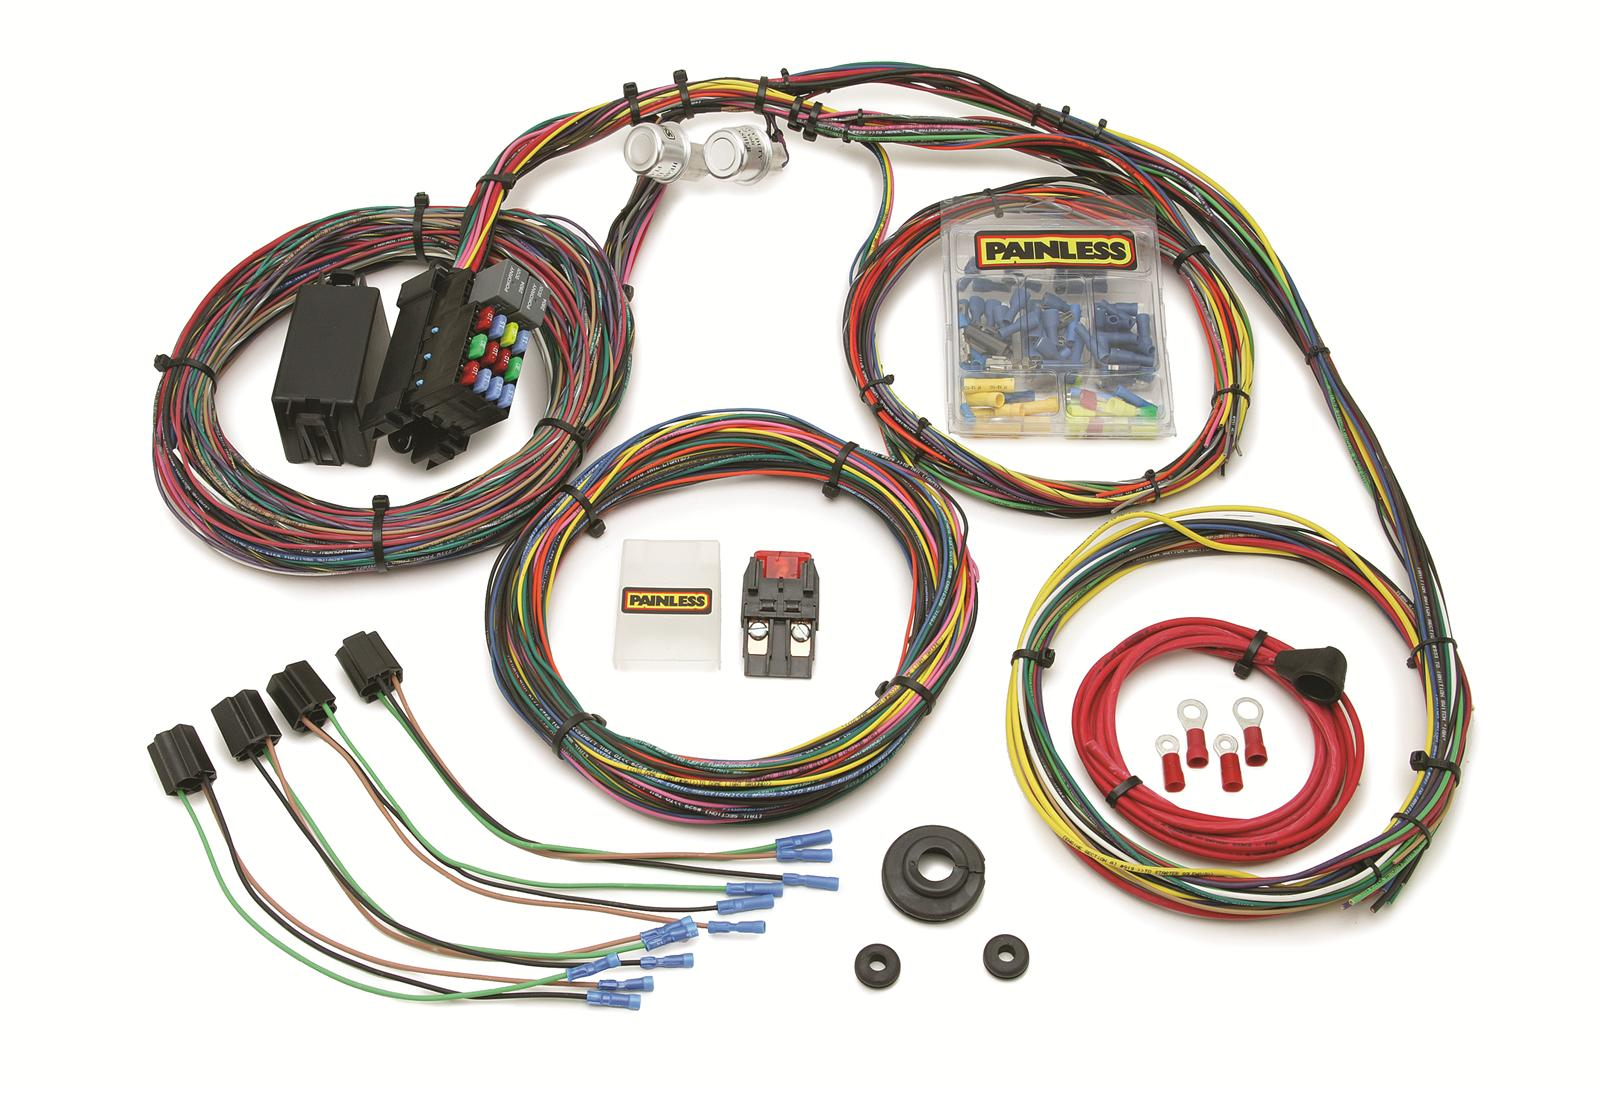 Marvelous Painless Performance 21 Circuit Mopar Color Coded Universal Wiring Wiring Cloud Oideiuggs Outletorg